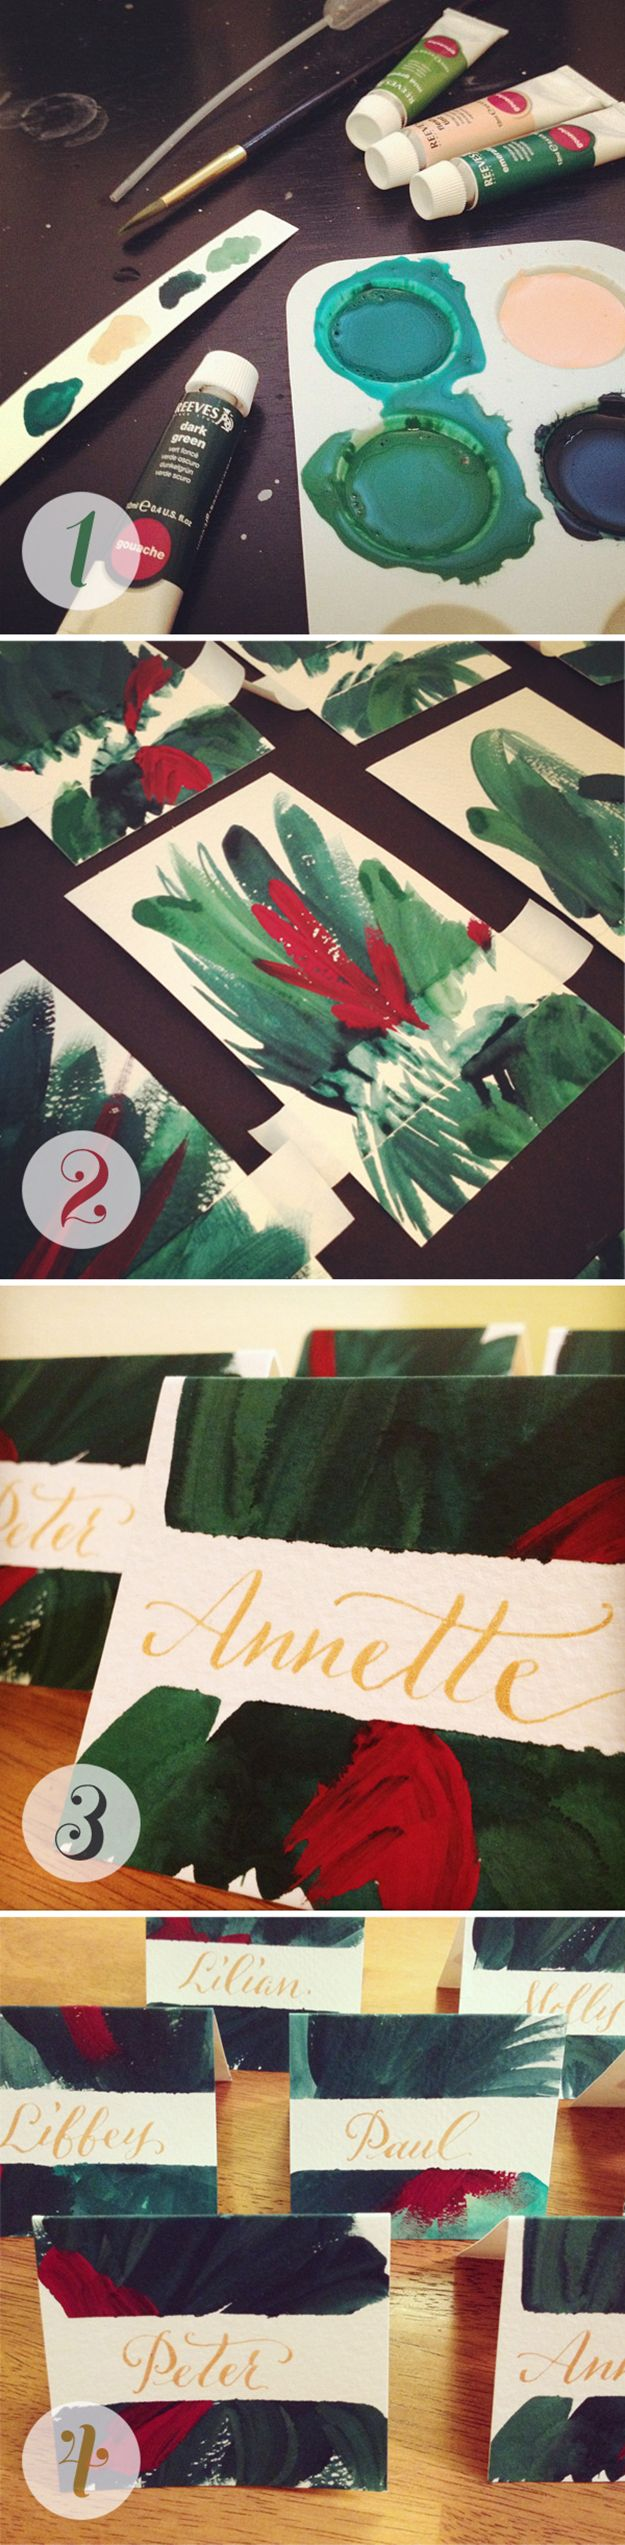 Paper Craft Ideas! Hand-painted Christmas Card Inspiration